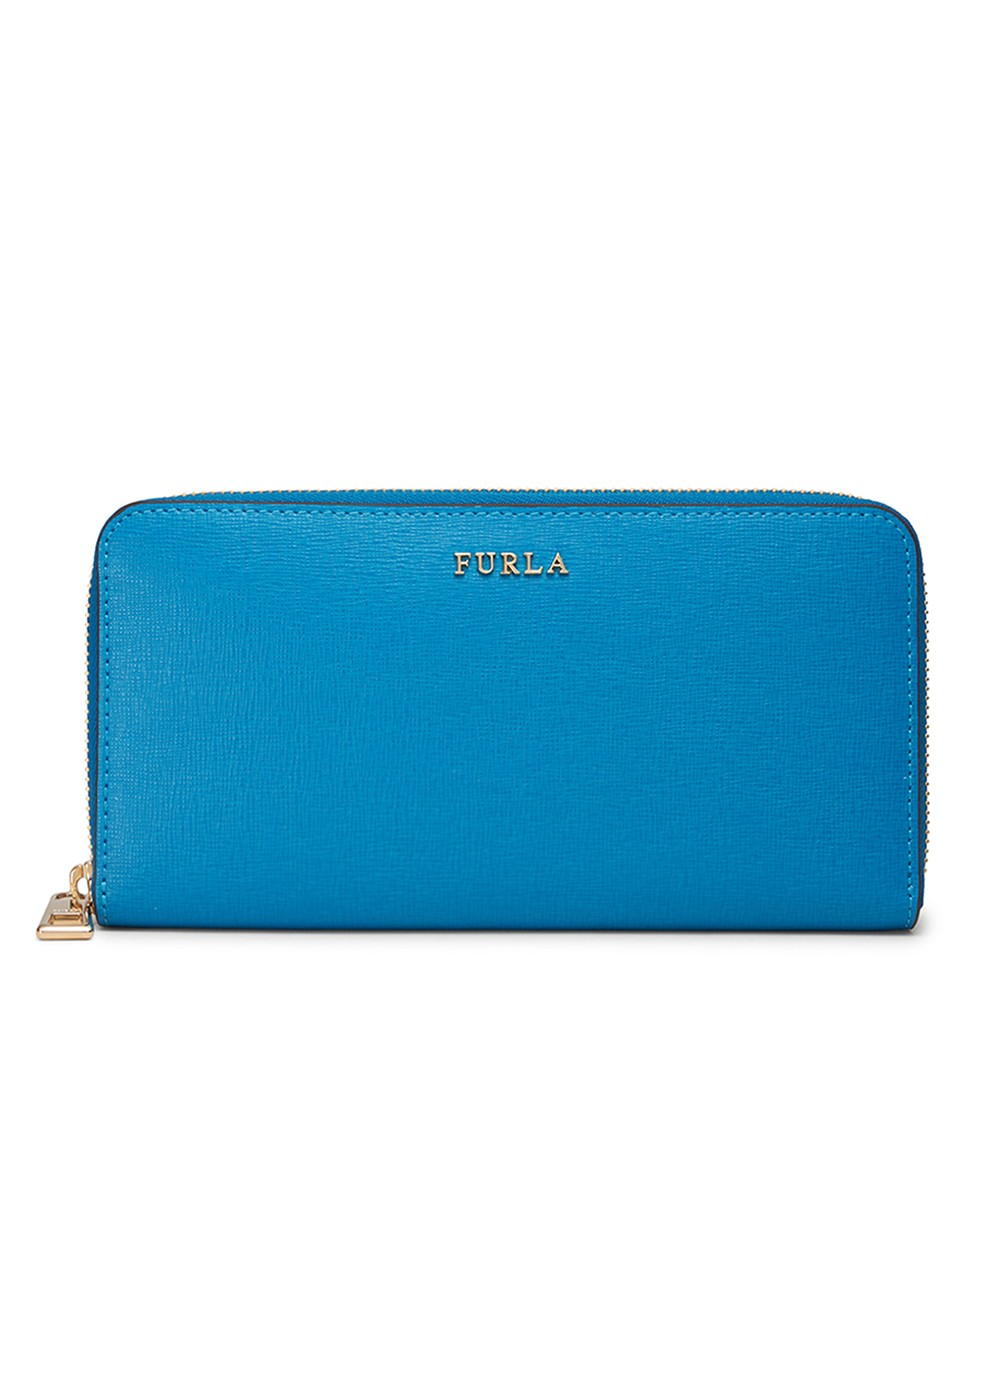 【最大59%OFF】BABYLON XL ZIP AROUND|CERULEO|レディース財布|FURLA